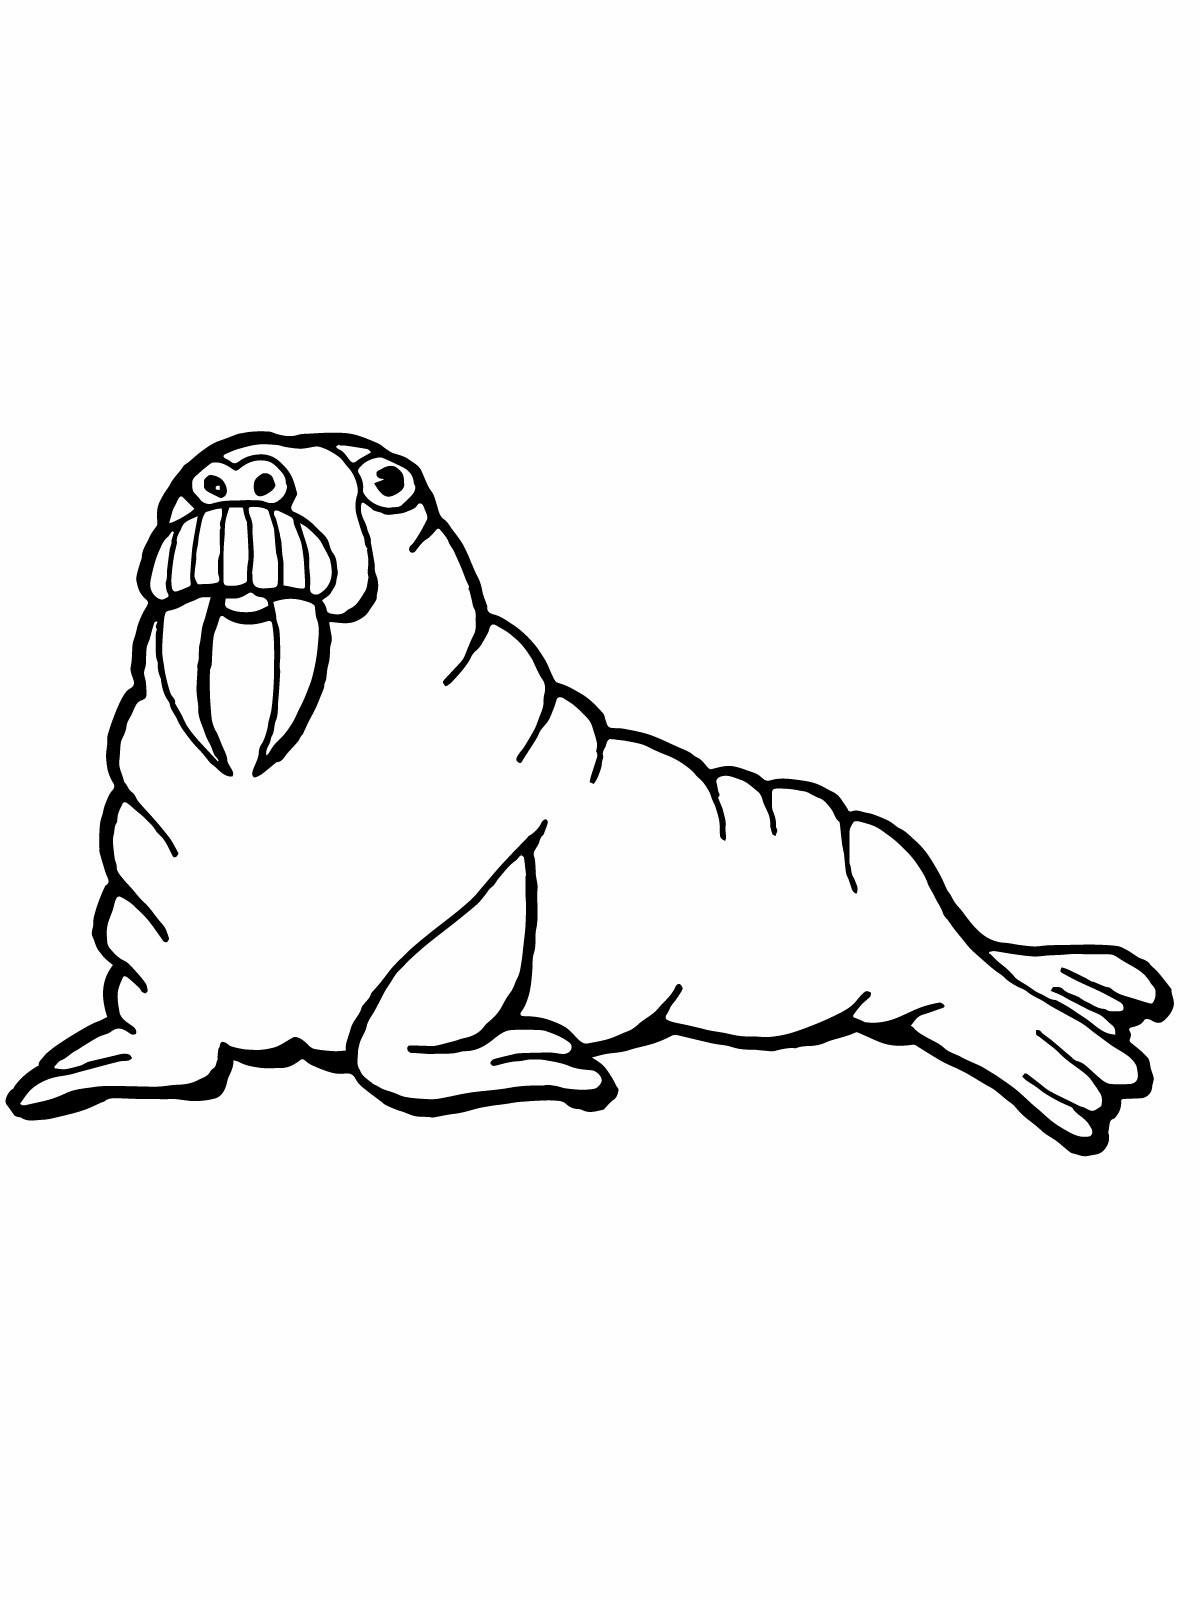 walrus coloring pages walrus coloring pages coloring pages to download and print walrus pages coloring